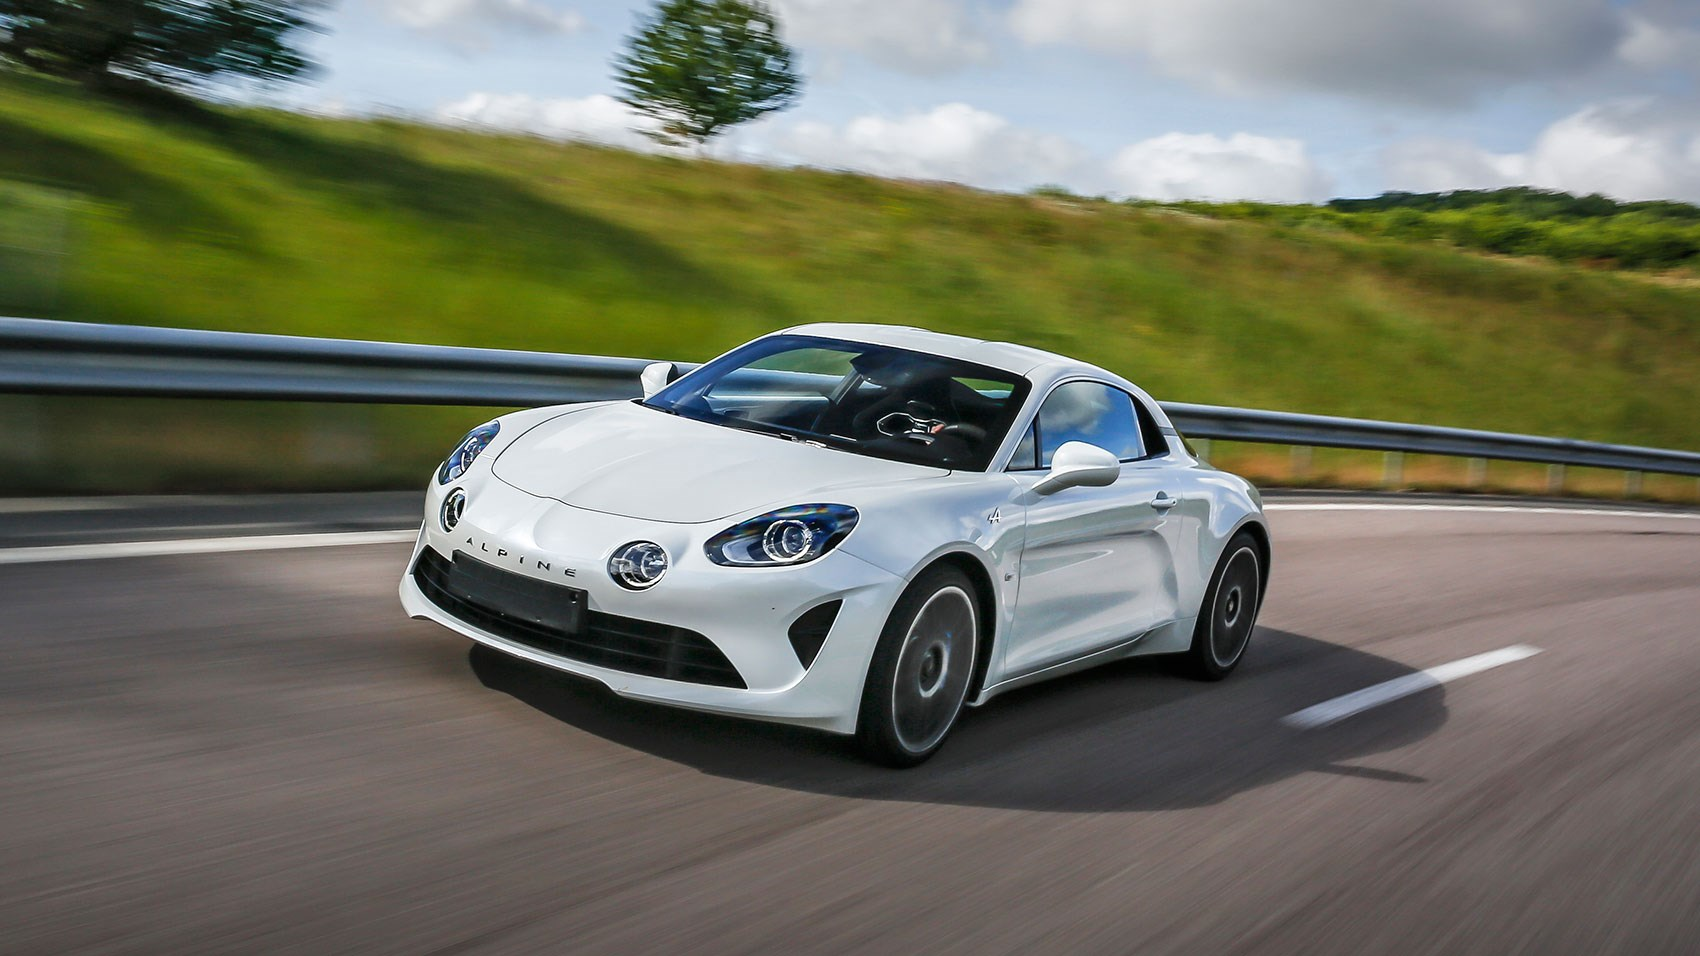 Alpine A110 sports car: mid-engined, two seater